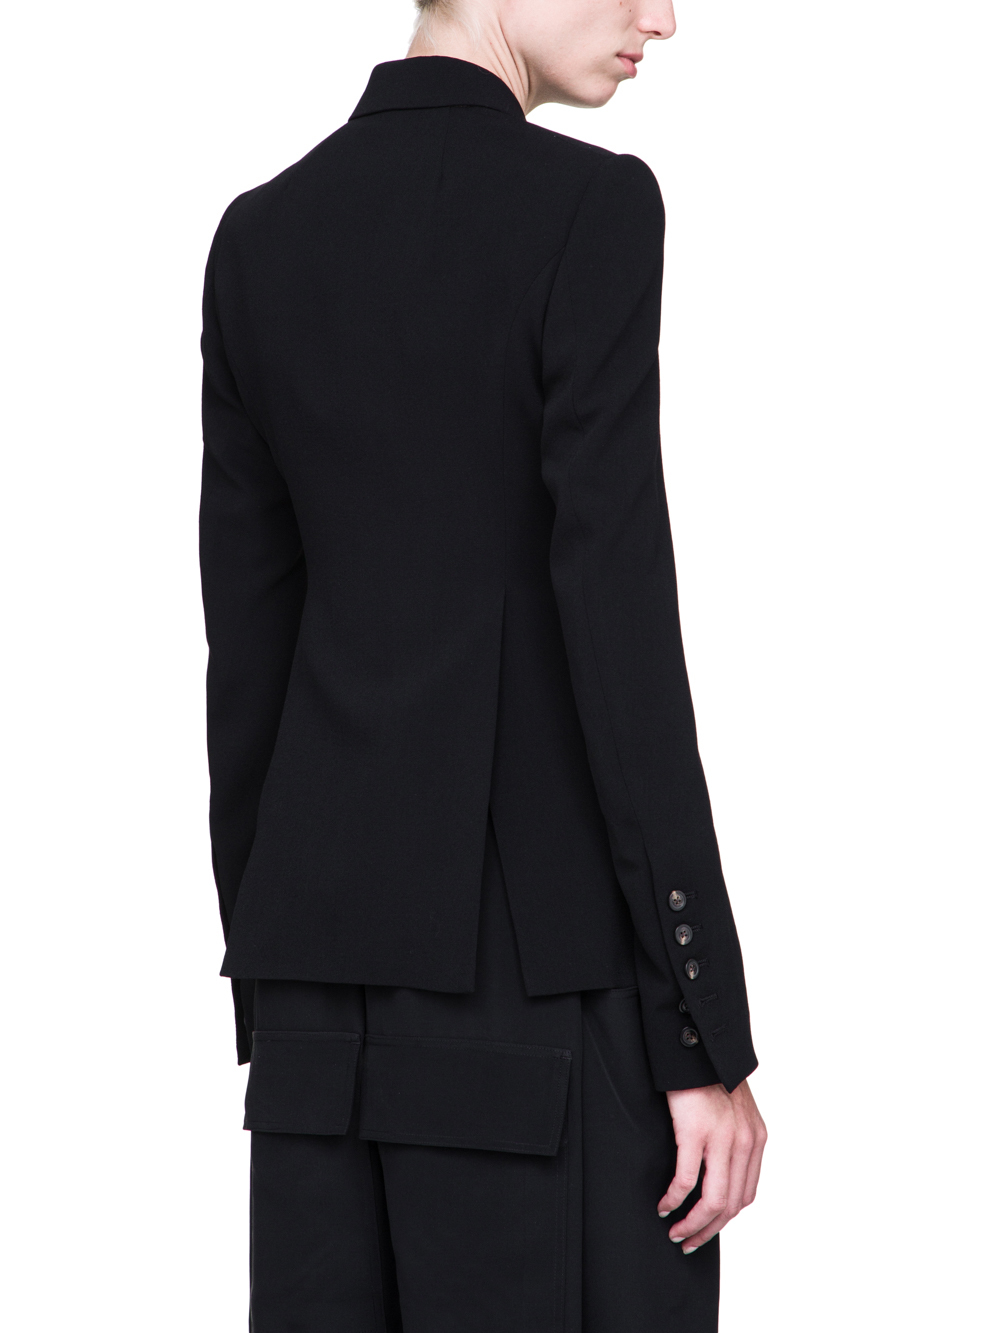 RICK OWENS FW18 SISYPHUS SOFT SHORT BLAZER IN BLACK LIGHT CREPE WOOL